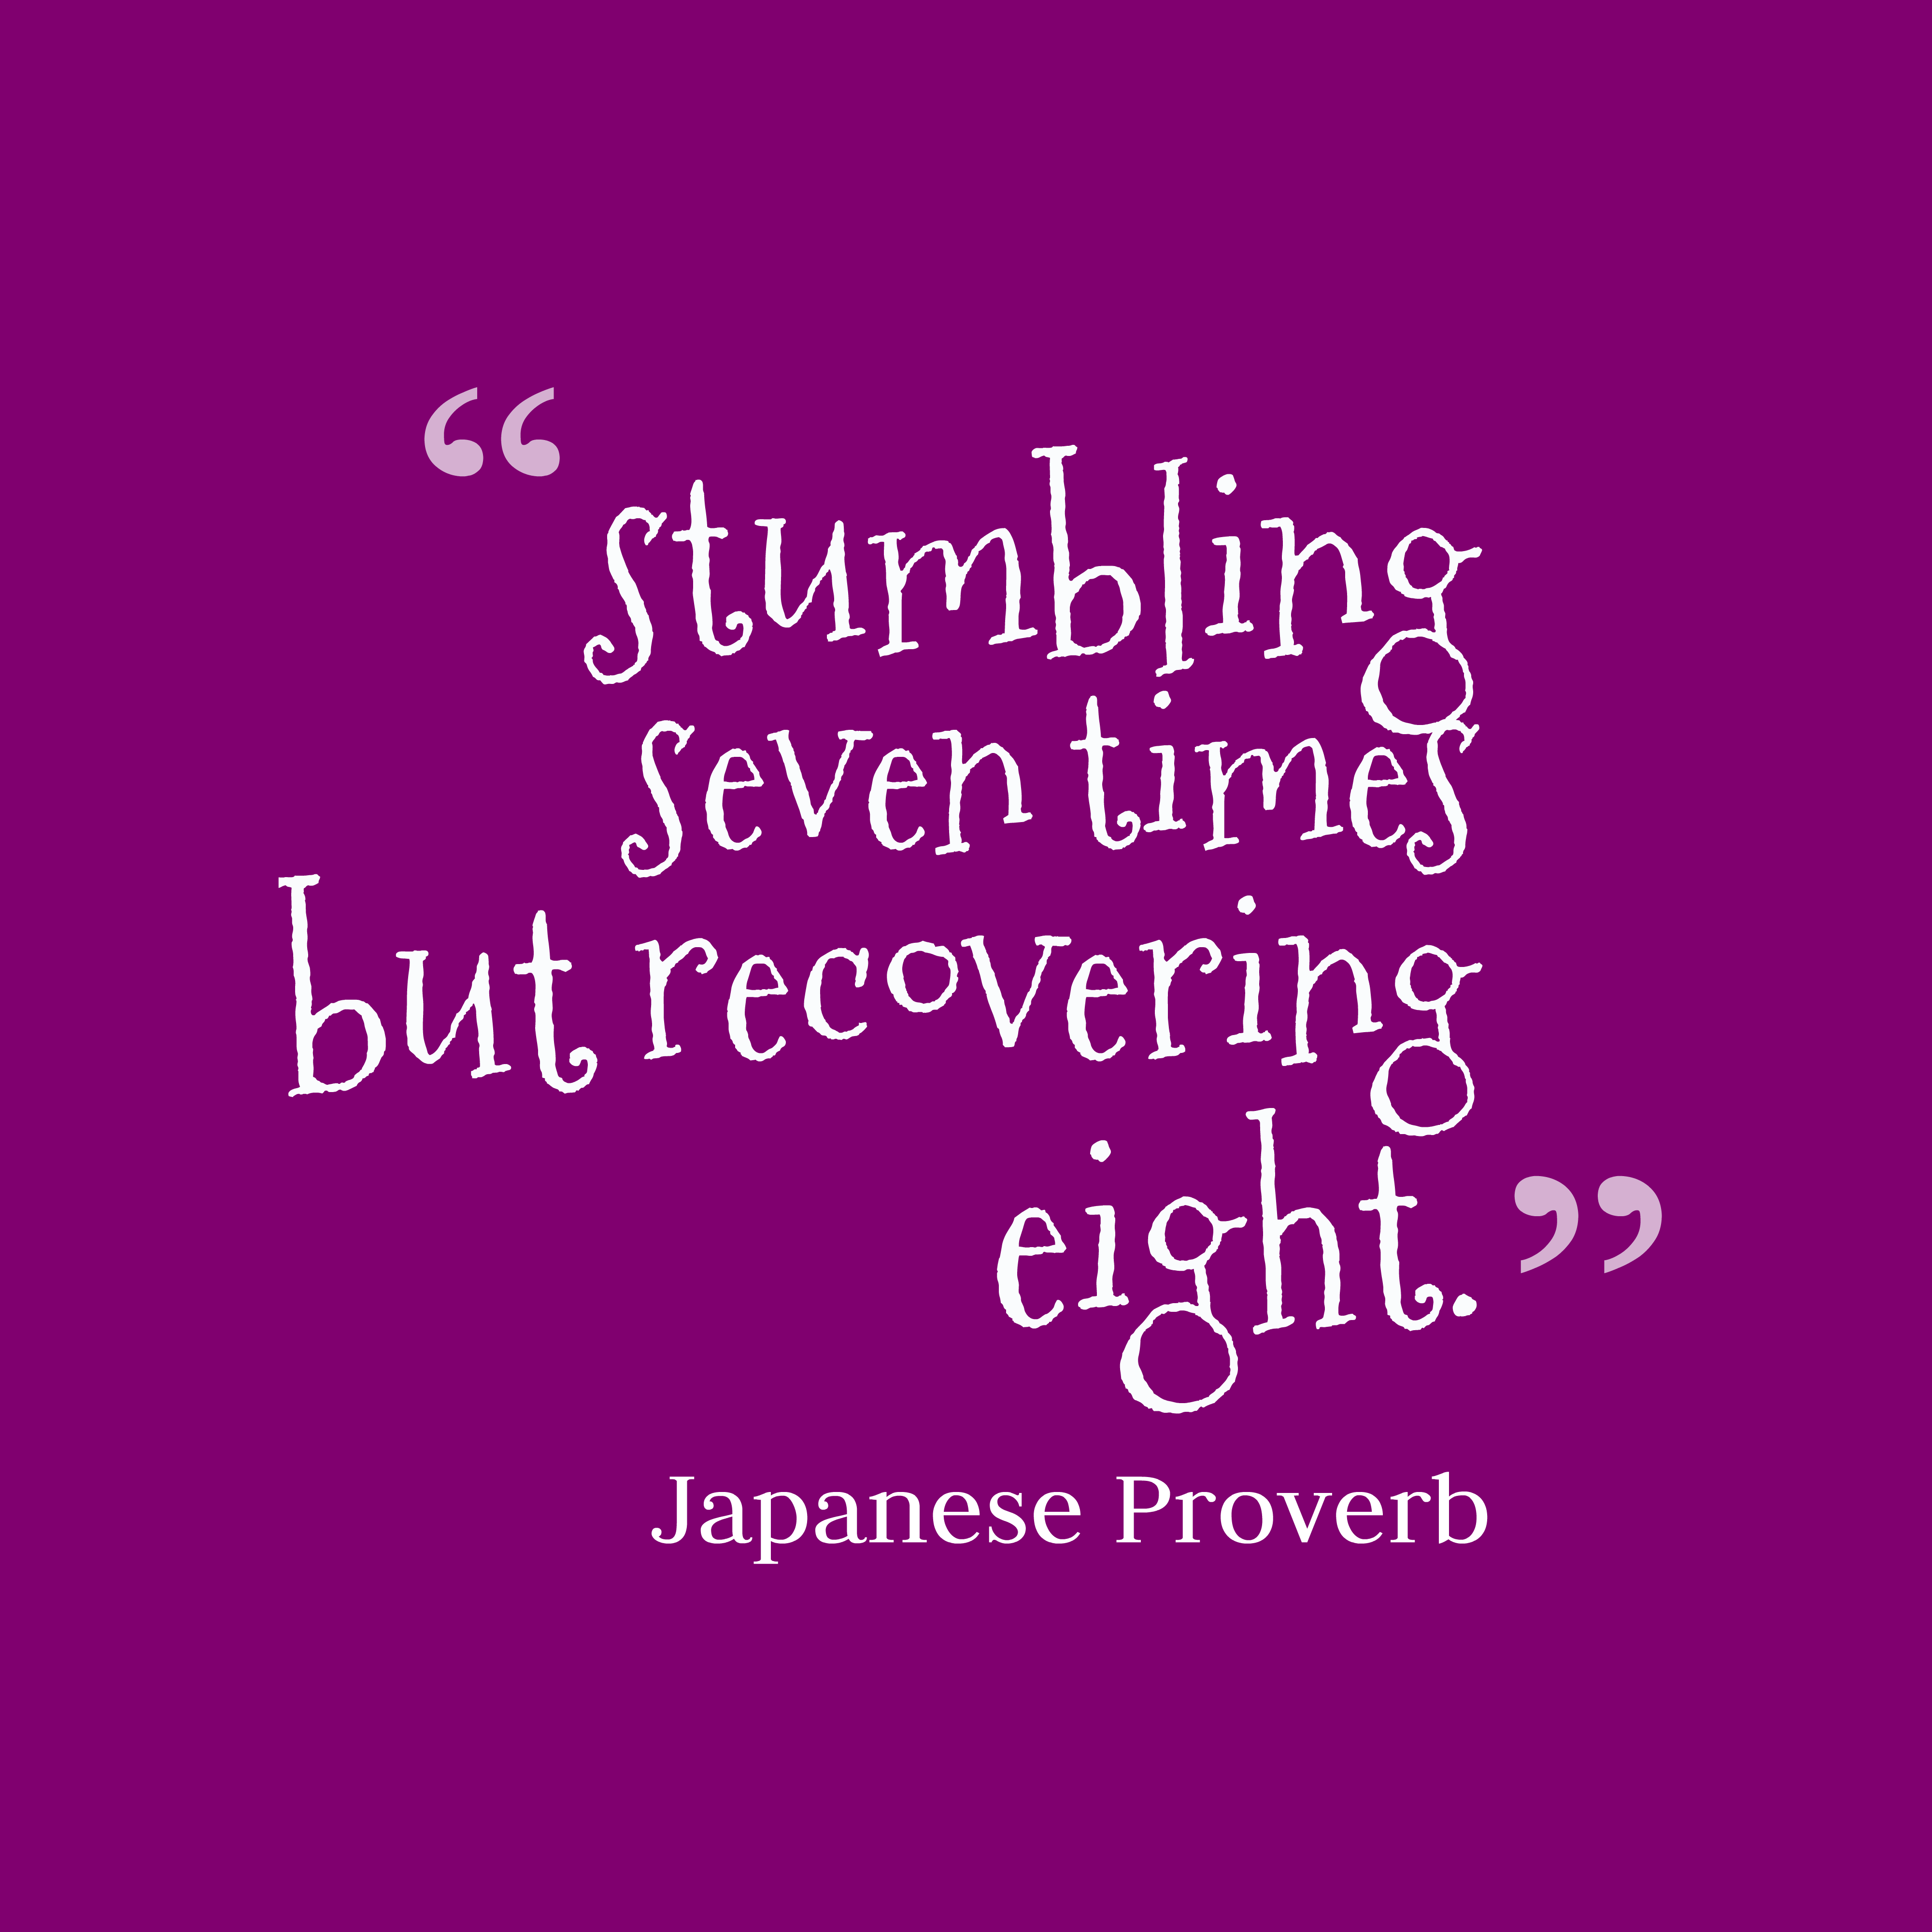 Persistence Motivational Quotes: Picture » Japanese Proverb About Perseverance